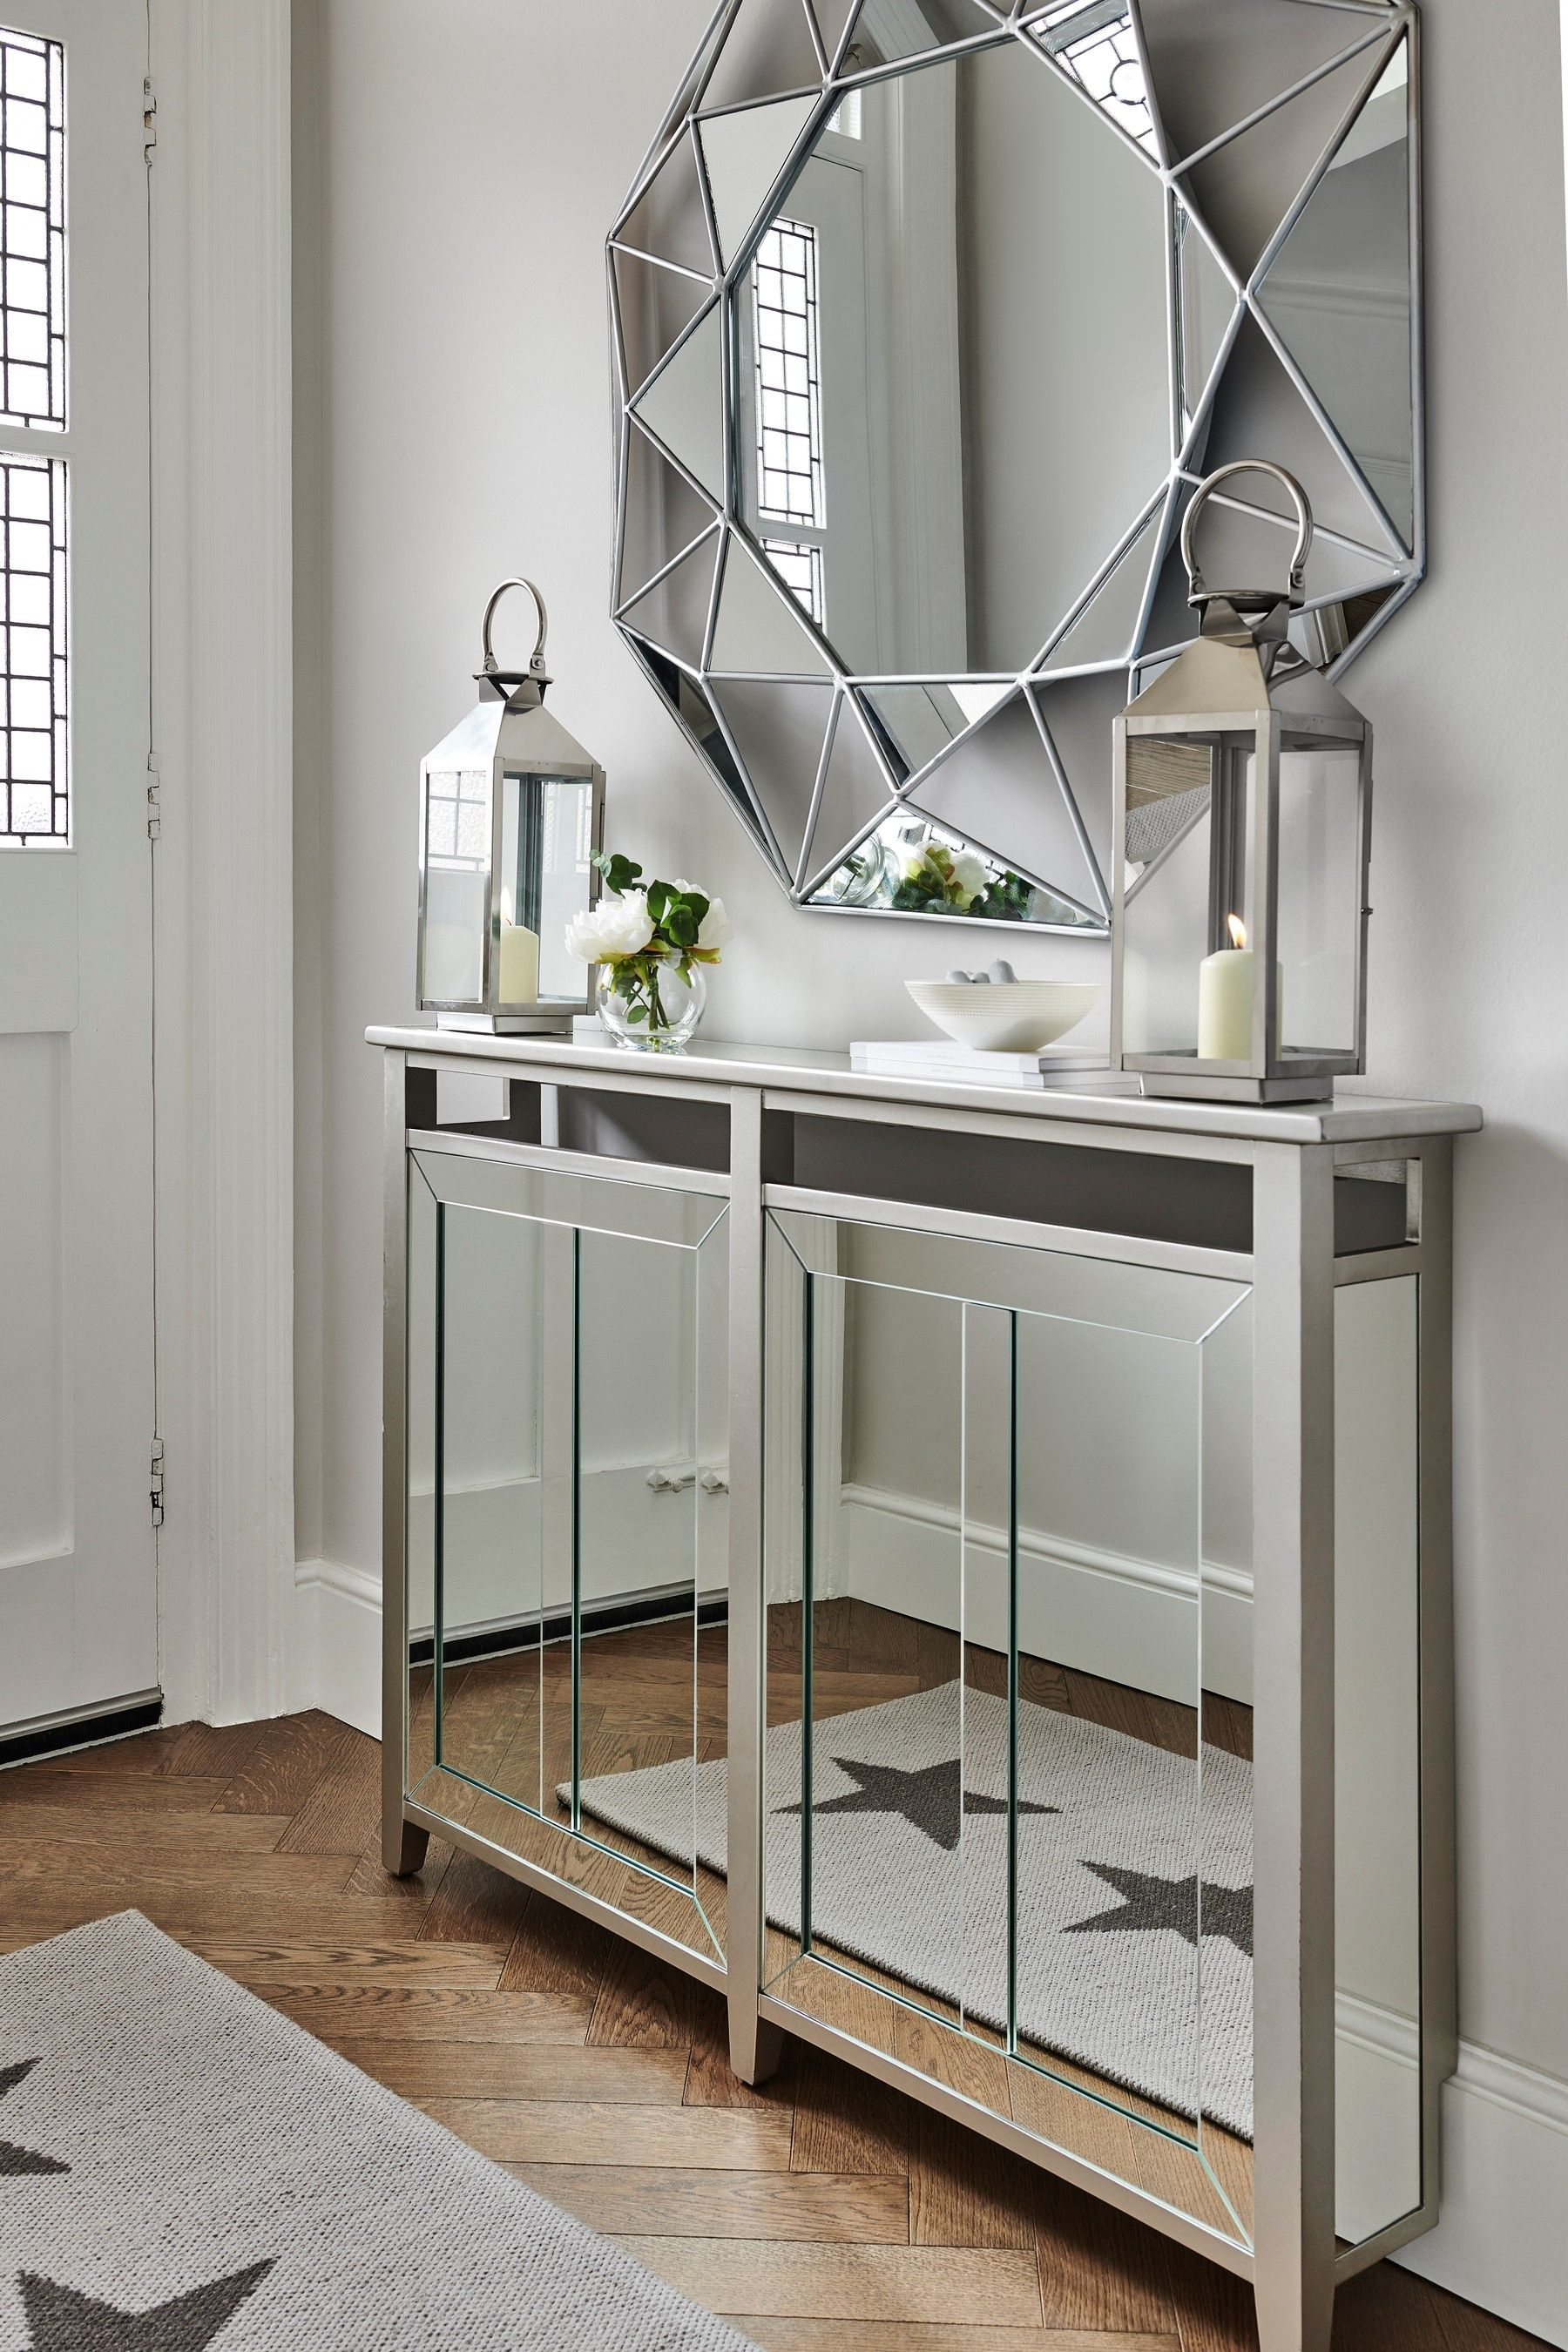 Buy Mirror Radiator Cover From The Next Uk Online Shop In